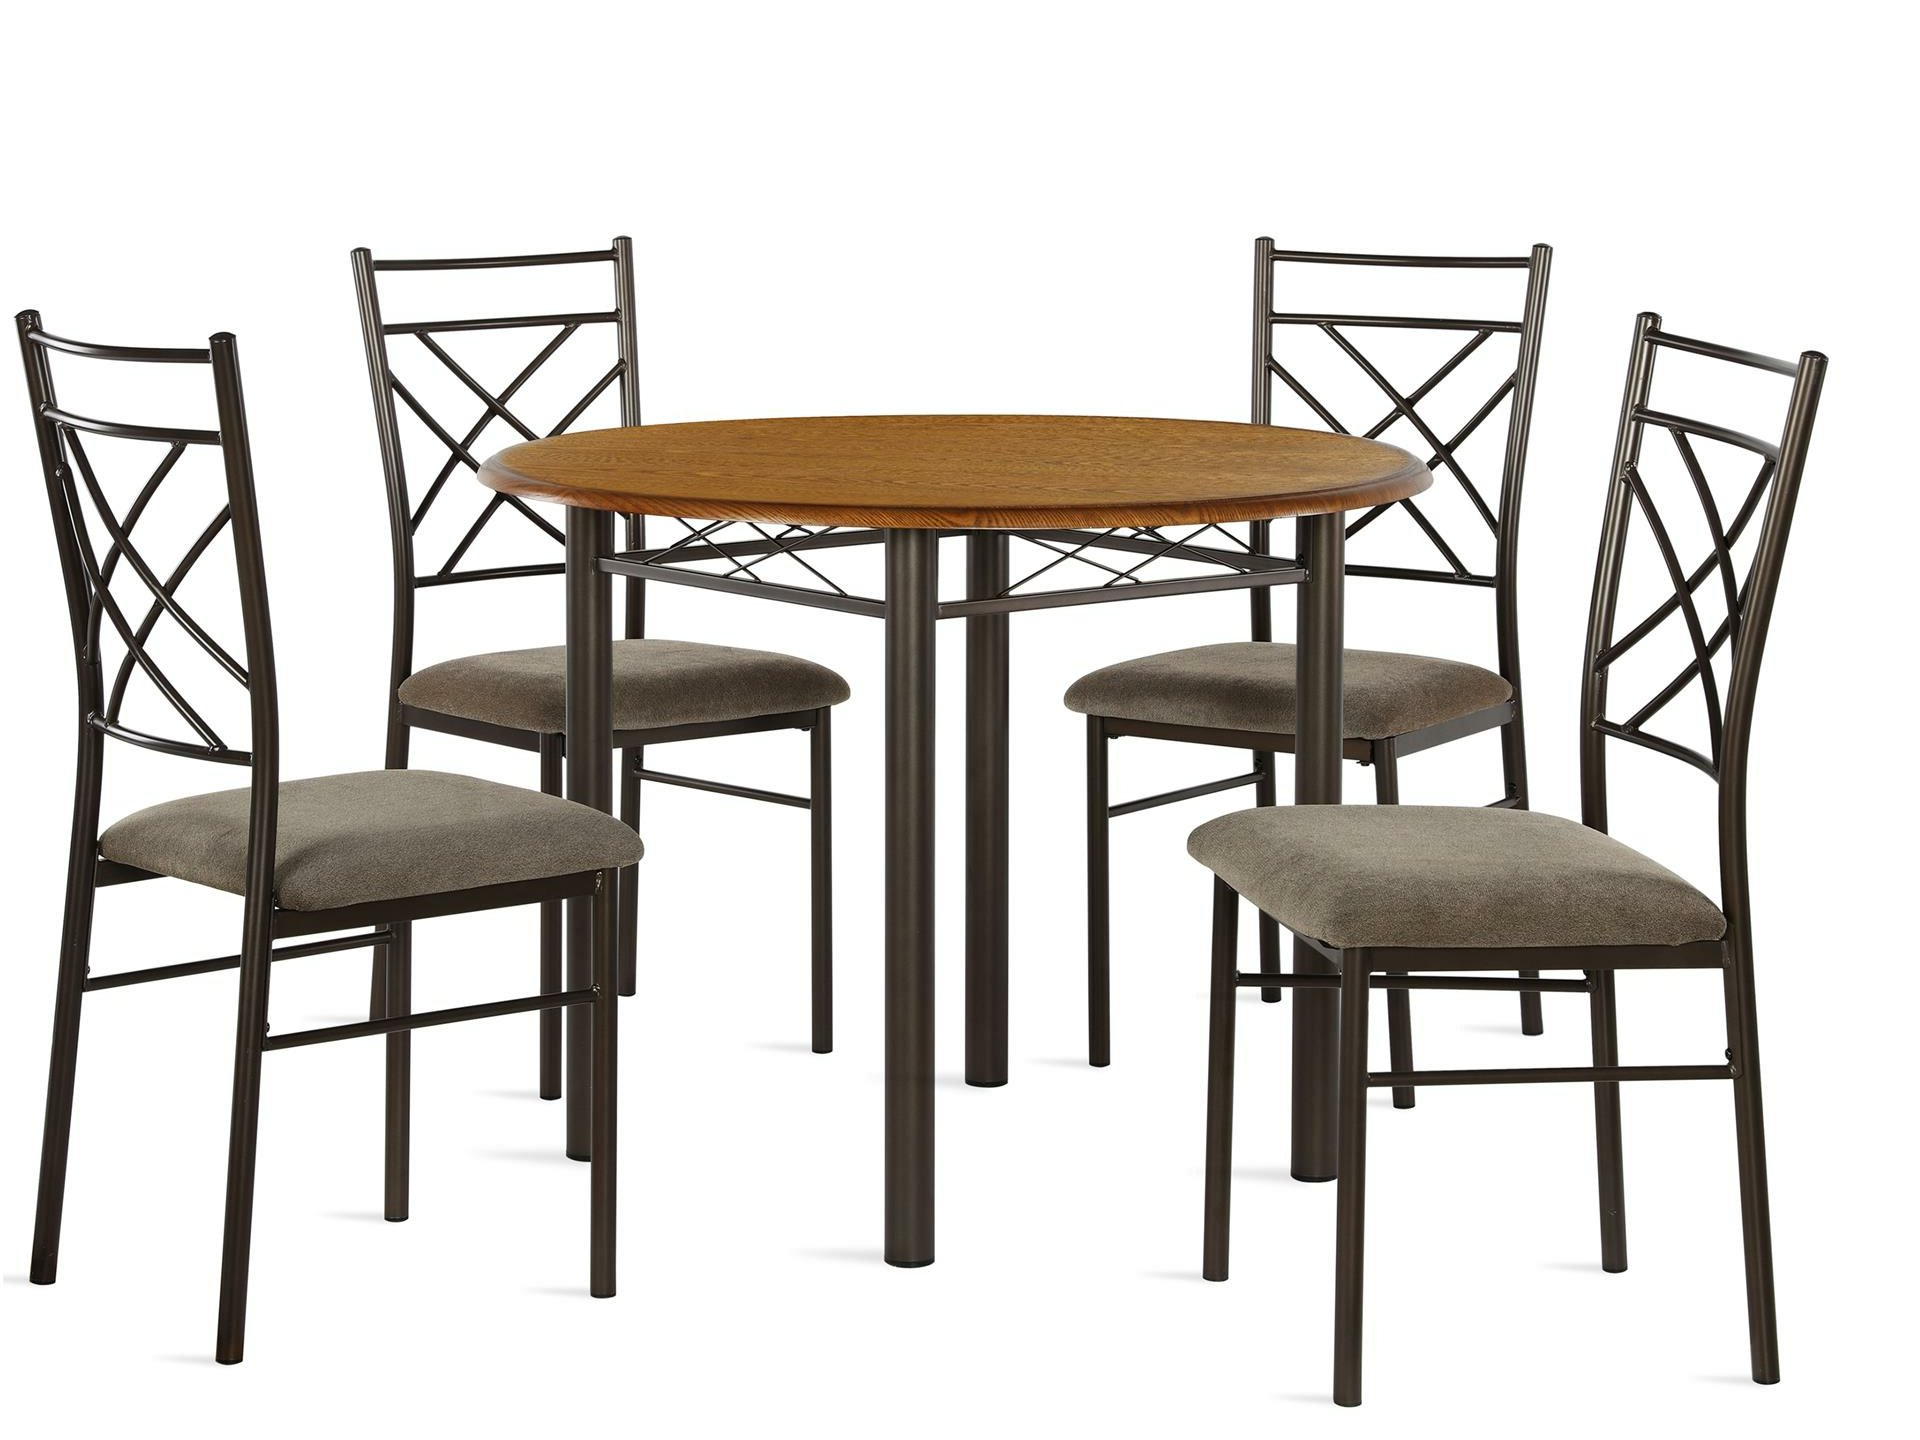 Ganya 5 Piece Dining Sets Intended For Well Known Janiya 5 Piece Dining Set (View 9 of 20)